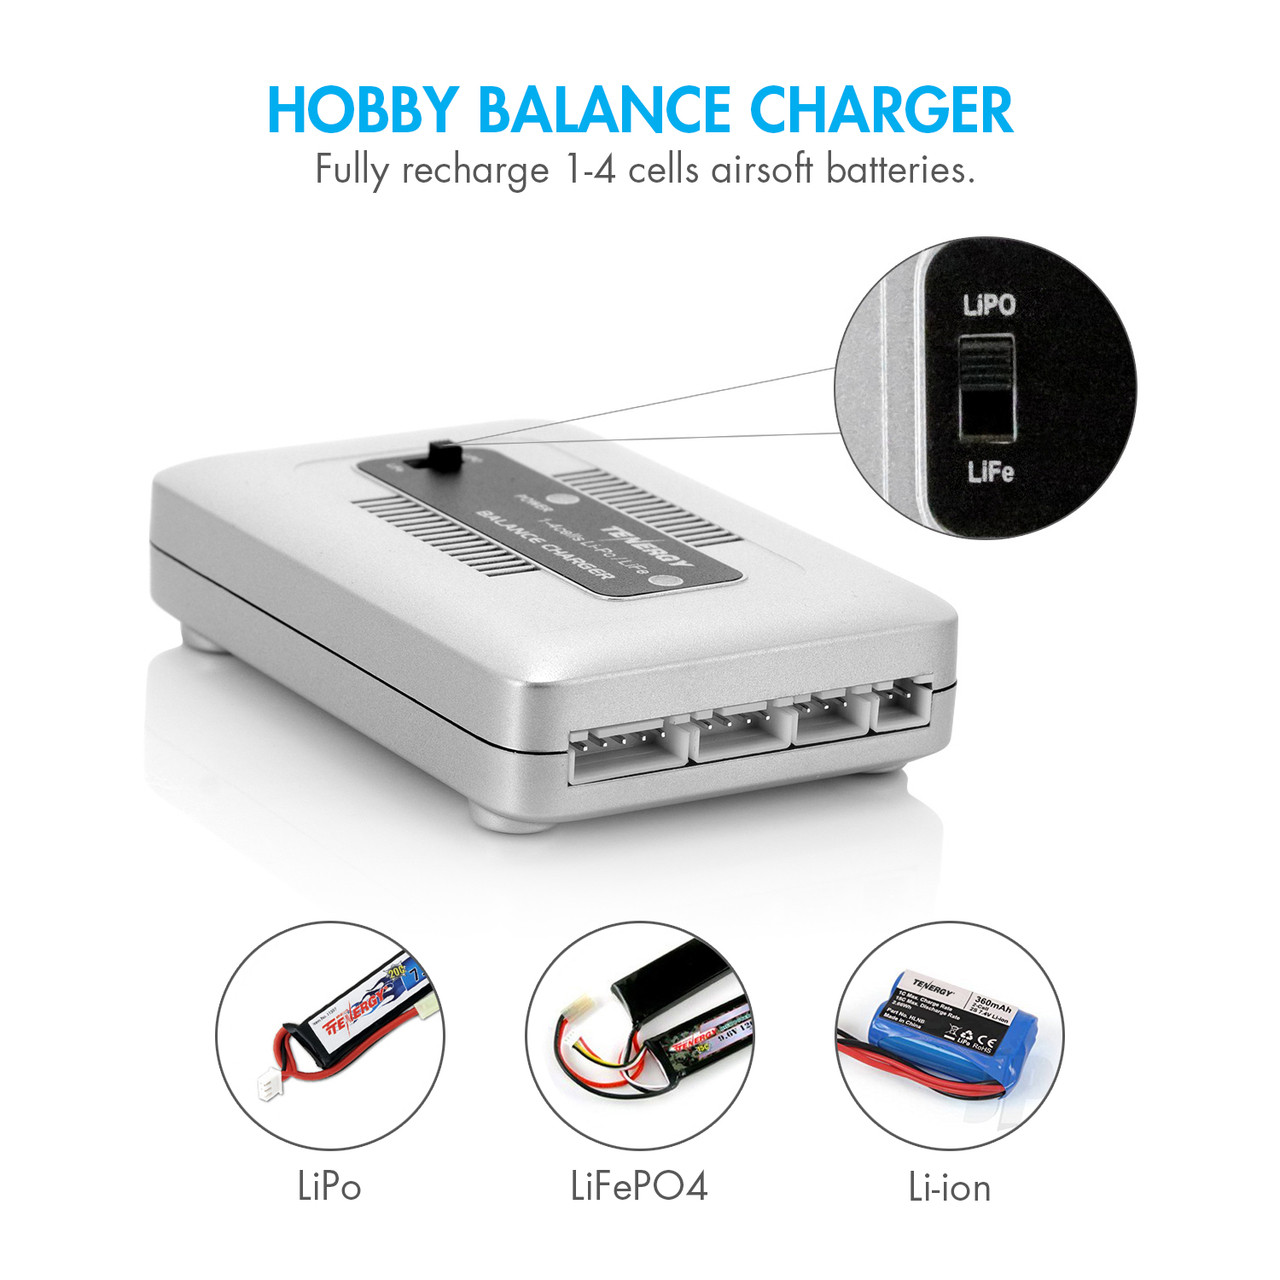 Tenergy TN267 1-4 Cells LiPO/LiFe Balance Charger - Great For Airsoft & RC Car Battery Packs